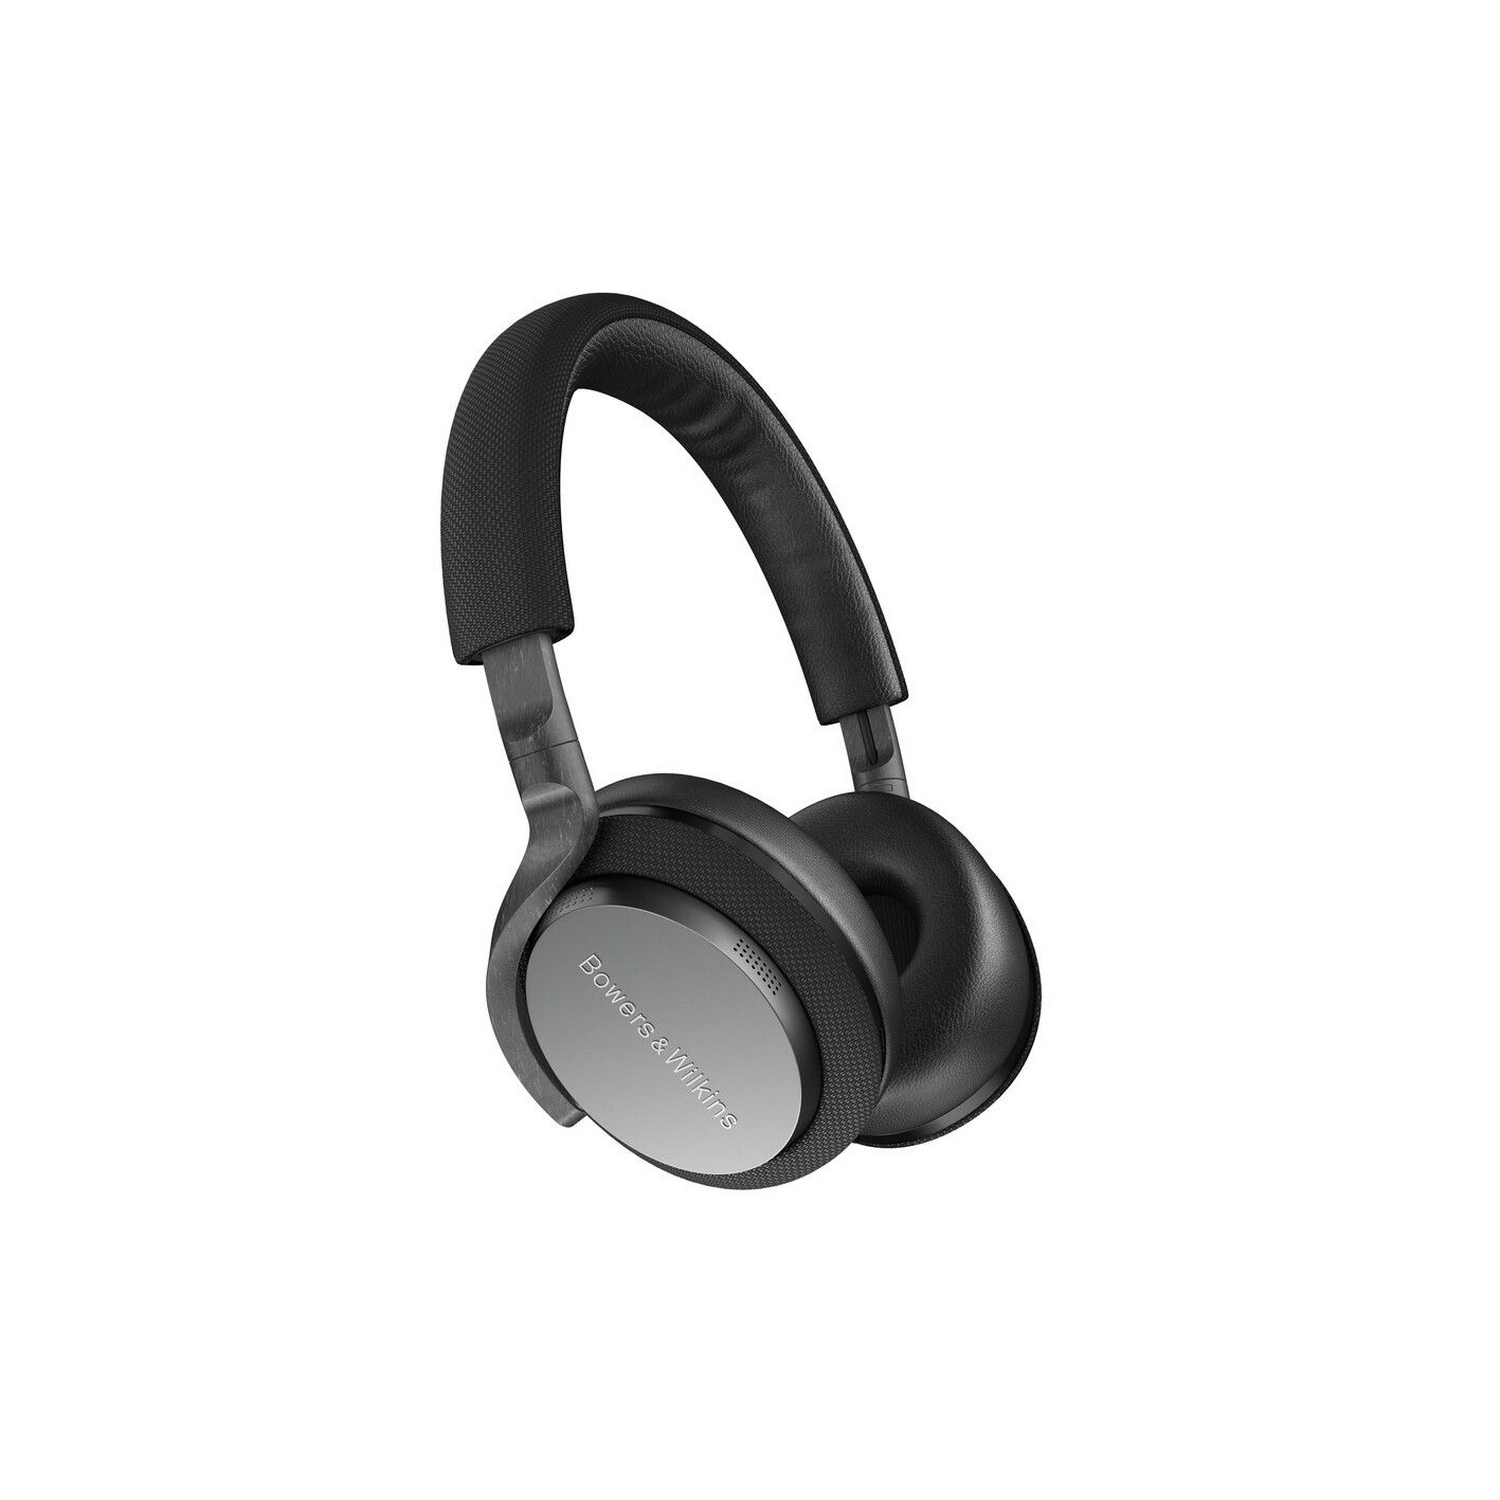 B&W PX5 Wireless Headphones Space Grey FP41181 FP41173